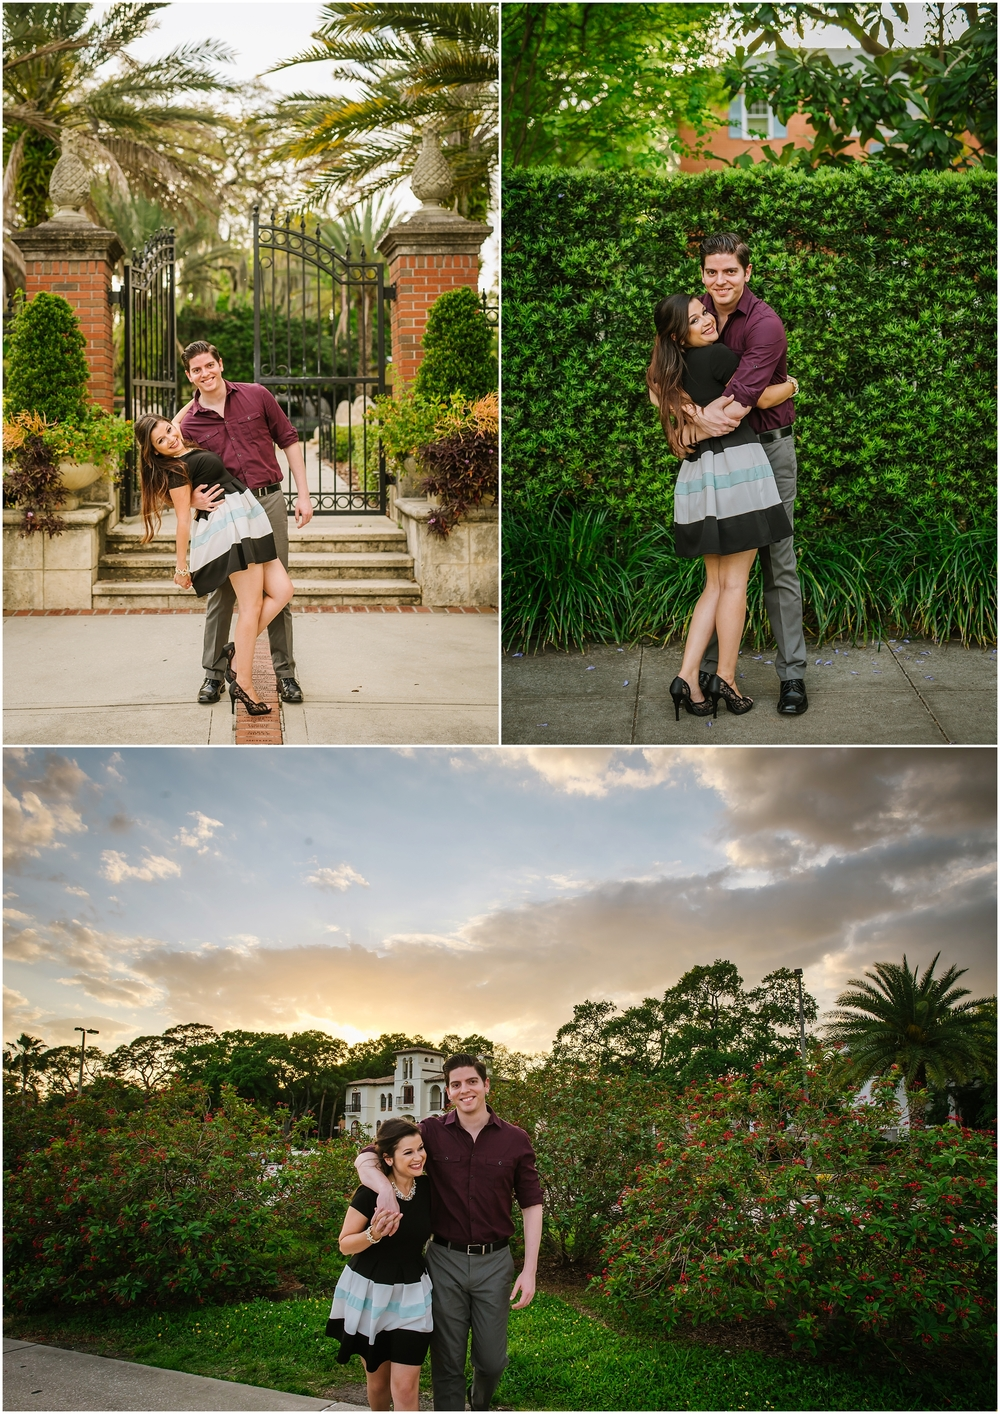 downtown-tampa-engagement-photography-ashlee-hamon_0008.jpg